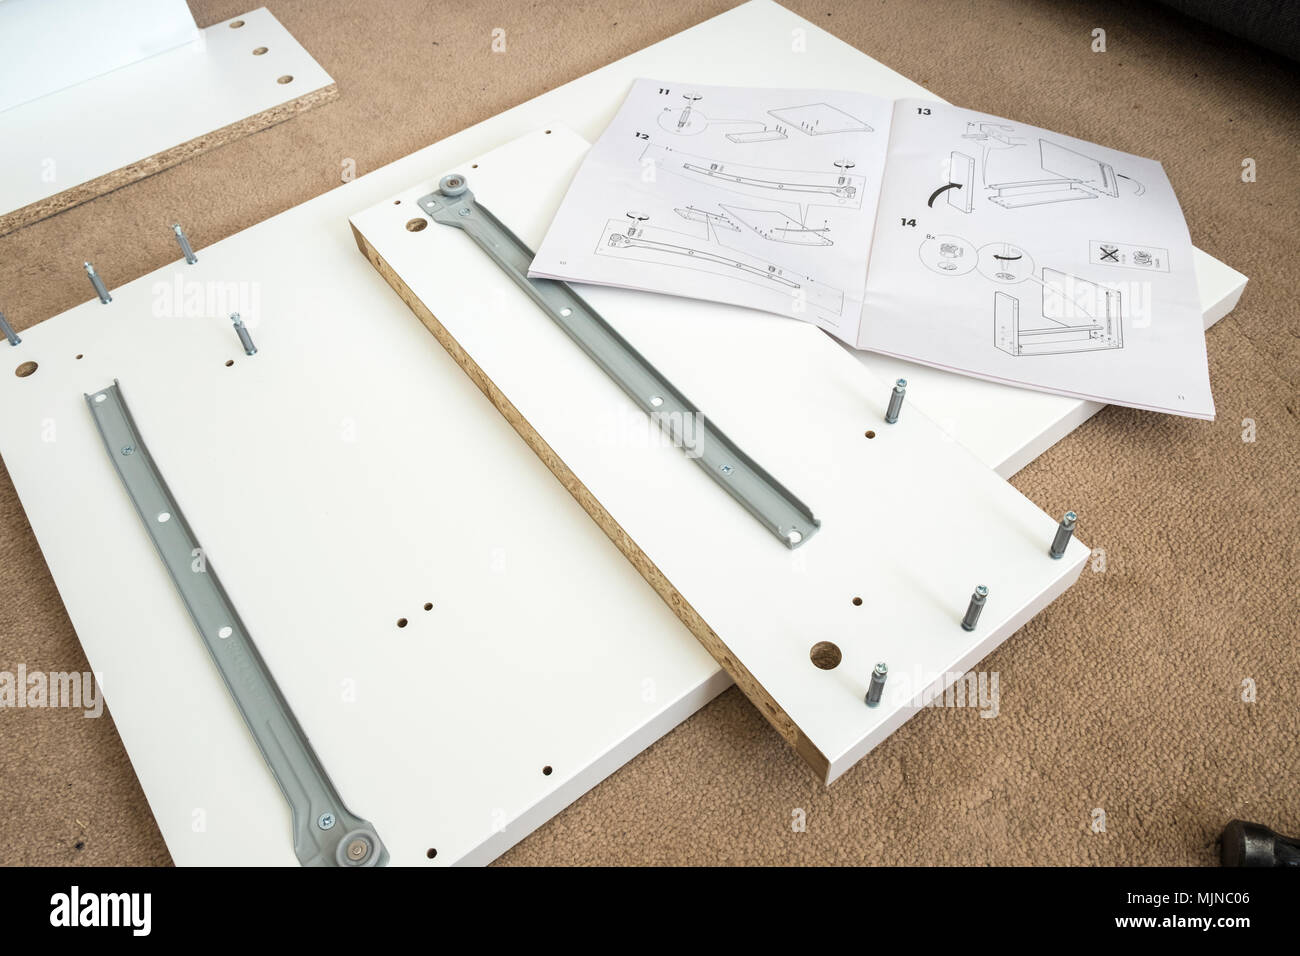 Ikea self assembly furniture and instructions - Stock Image